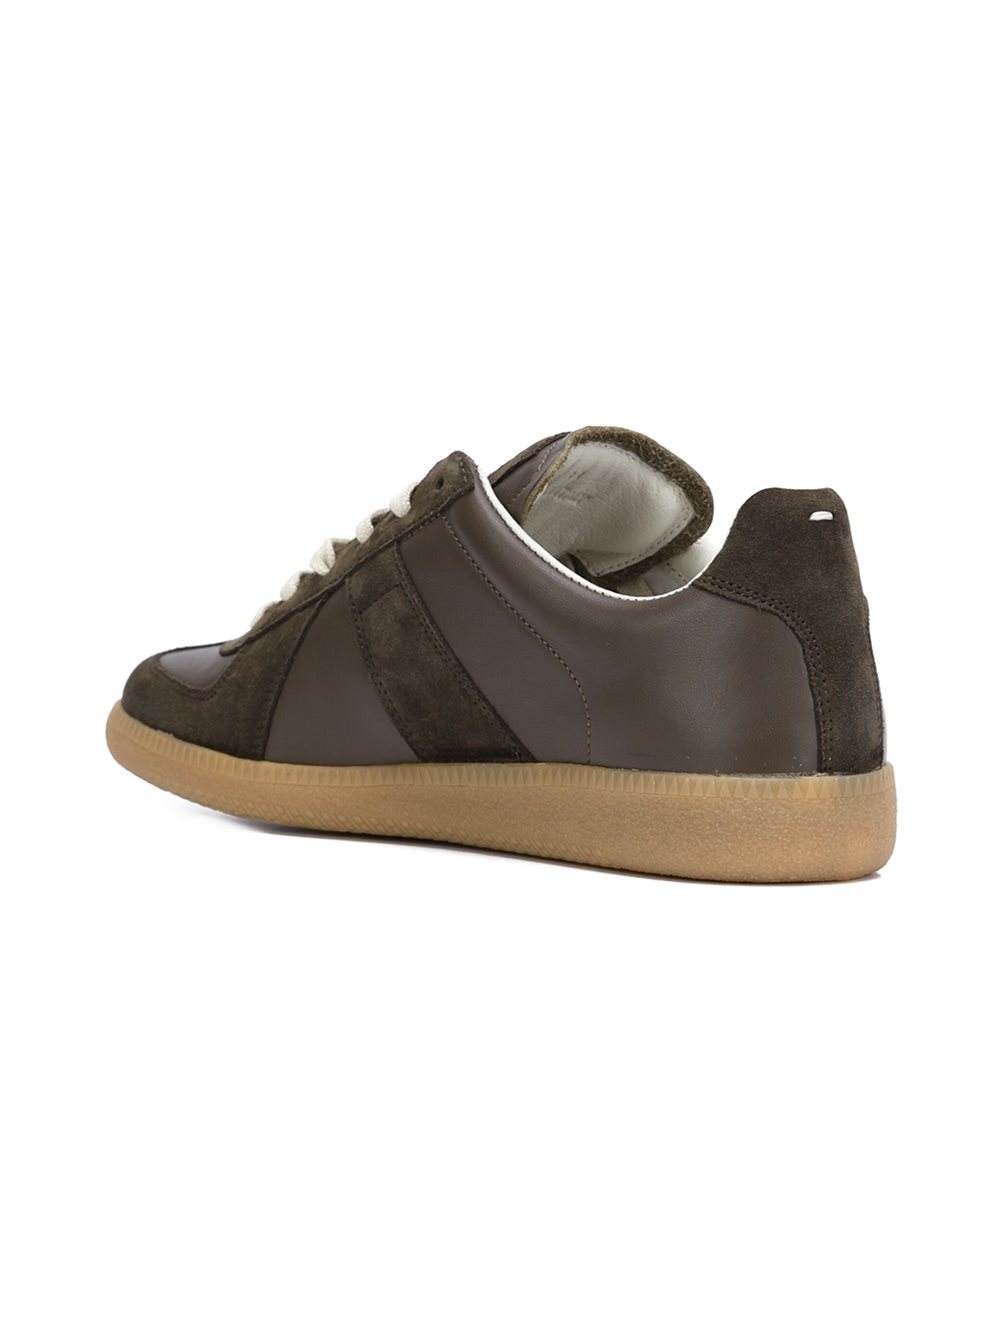 maison margiela 39 replica 39 sneakers in brown for men lyst. Black Bedroom Furniture Sets. Home Design Ideas